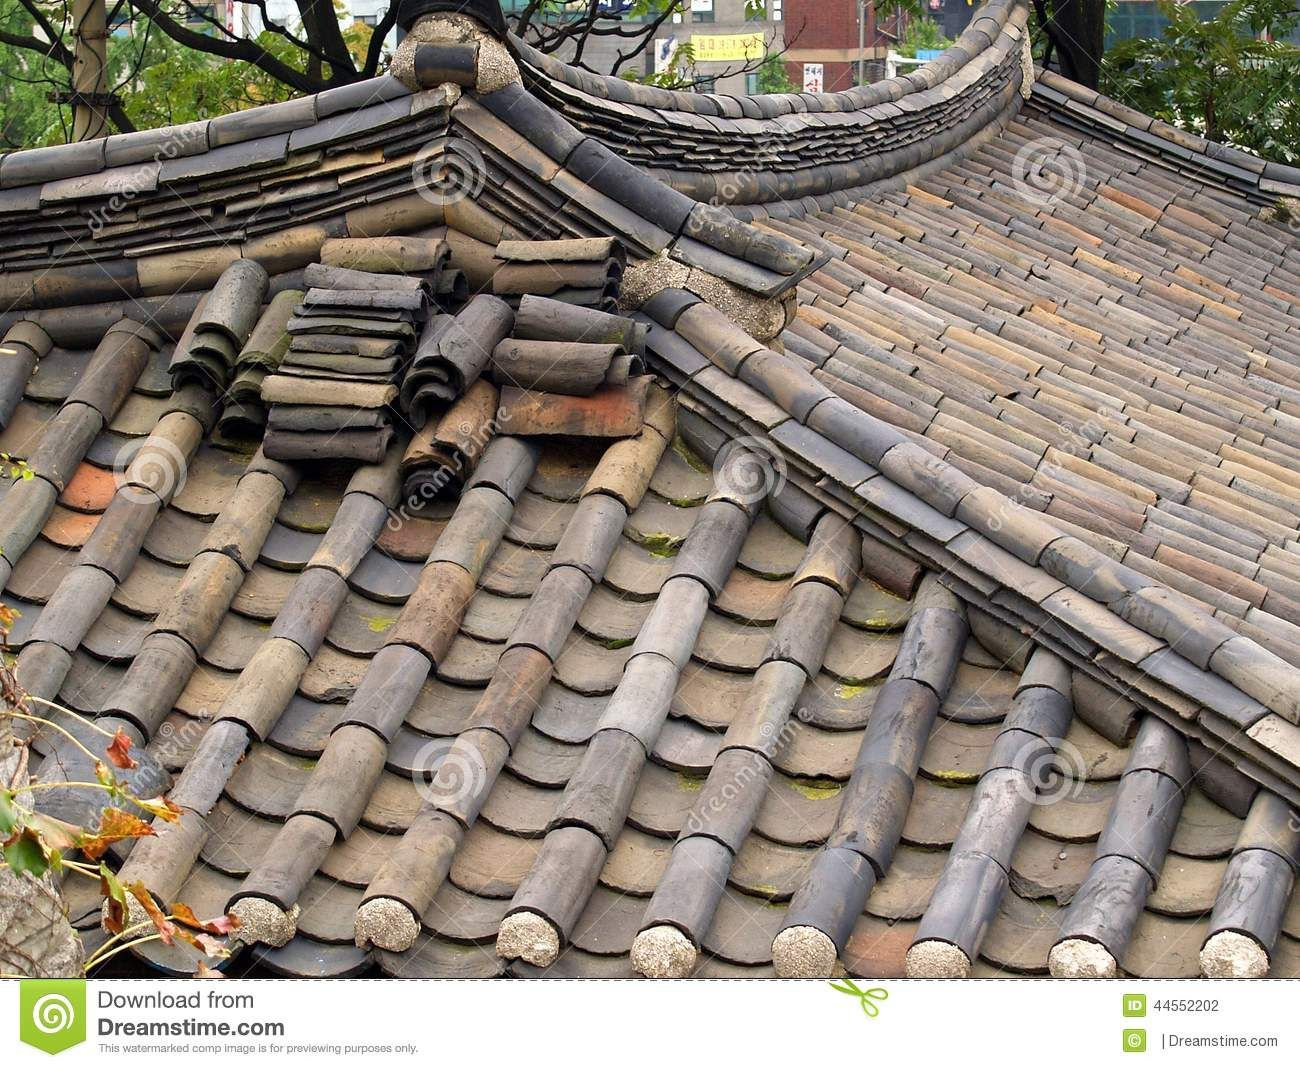 Traditional bamboo style ceramic roof tiles seoul south korea photo about traditional bamboo style ceramic roof tiles seoul south korea dailygadgetfo Choice Image